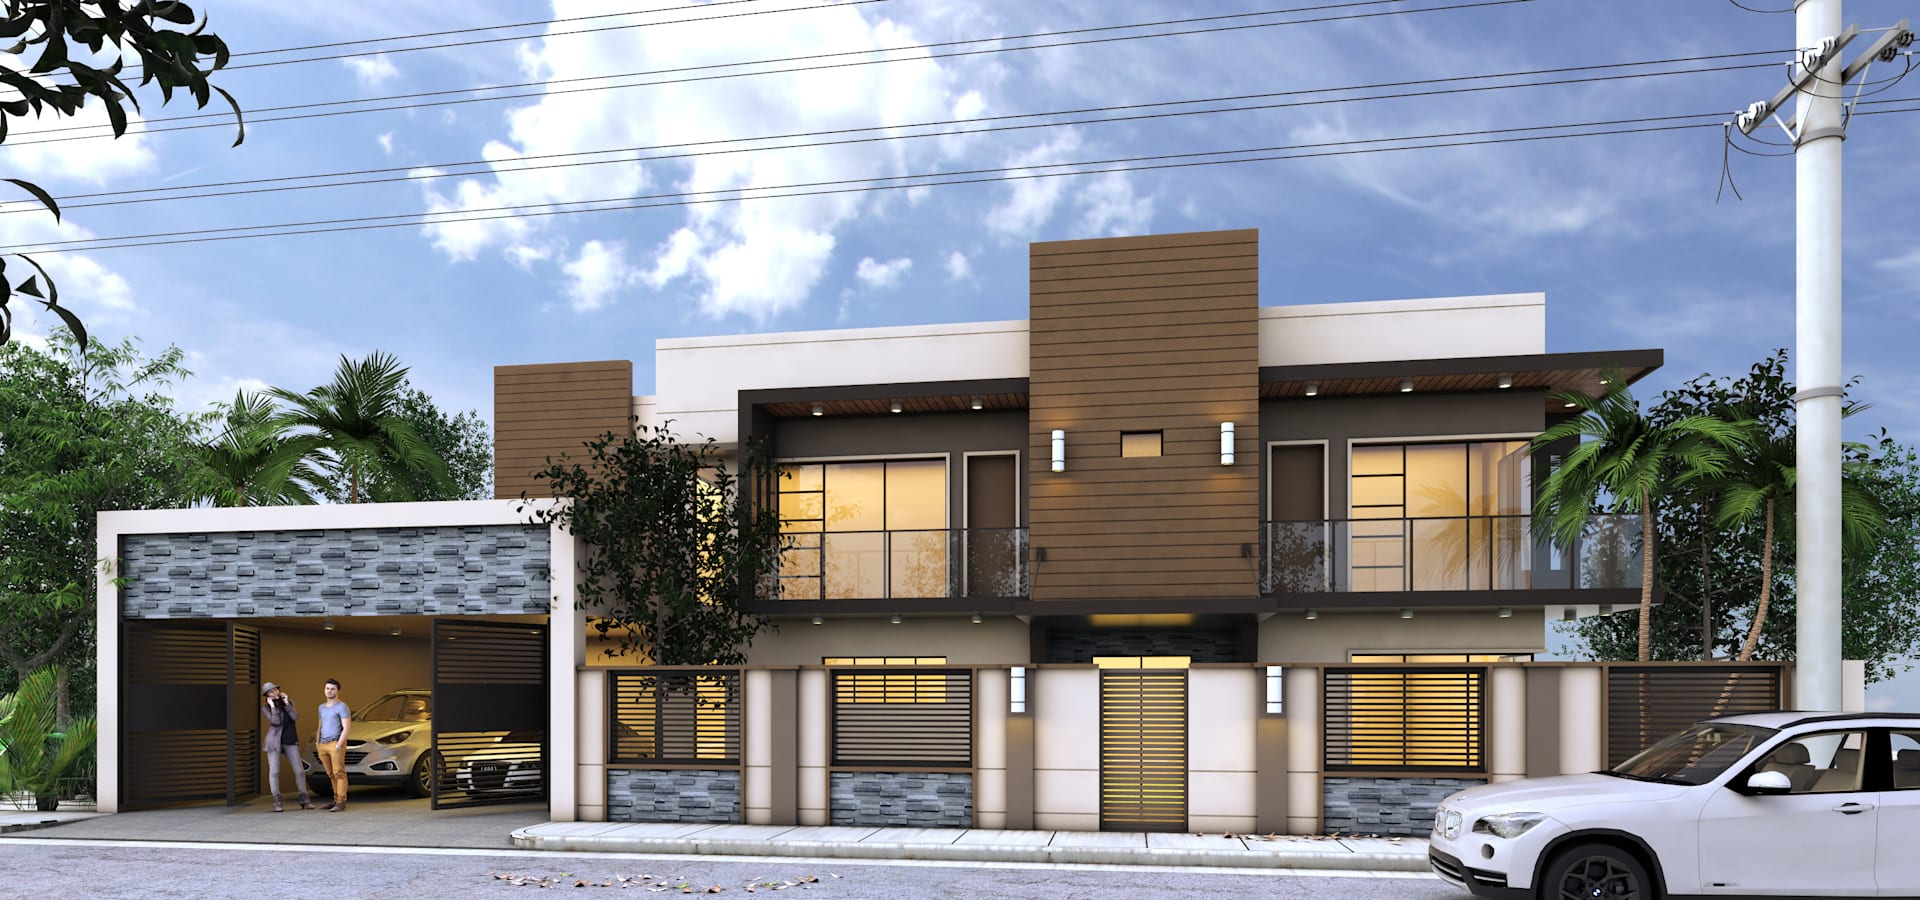 Kc zc archdesign architects in manila city homify for Design homes kc